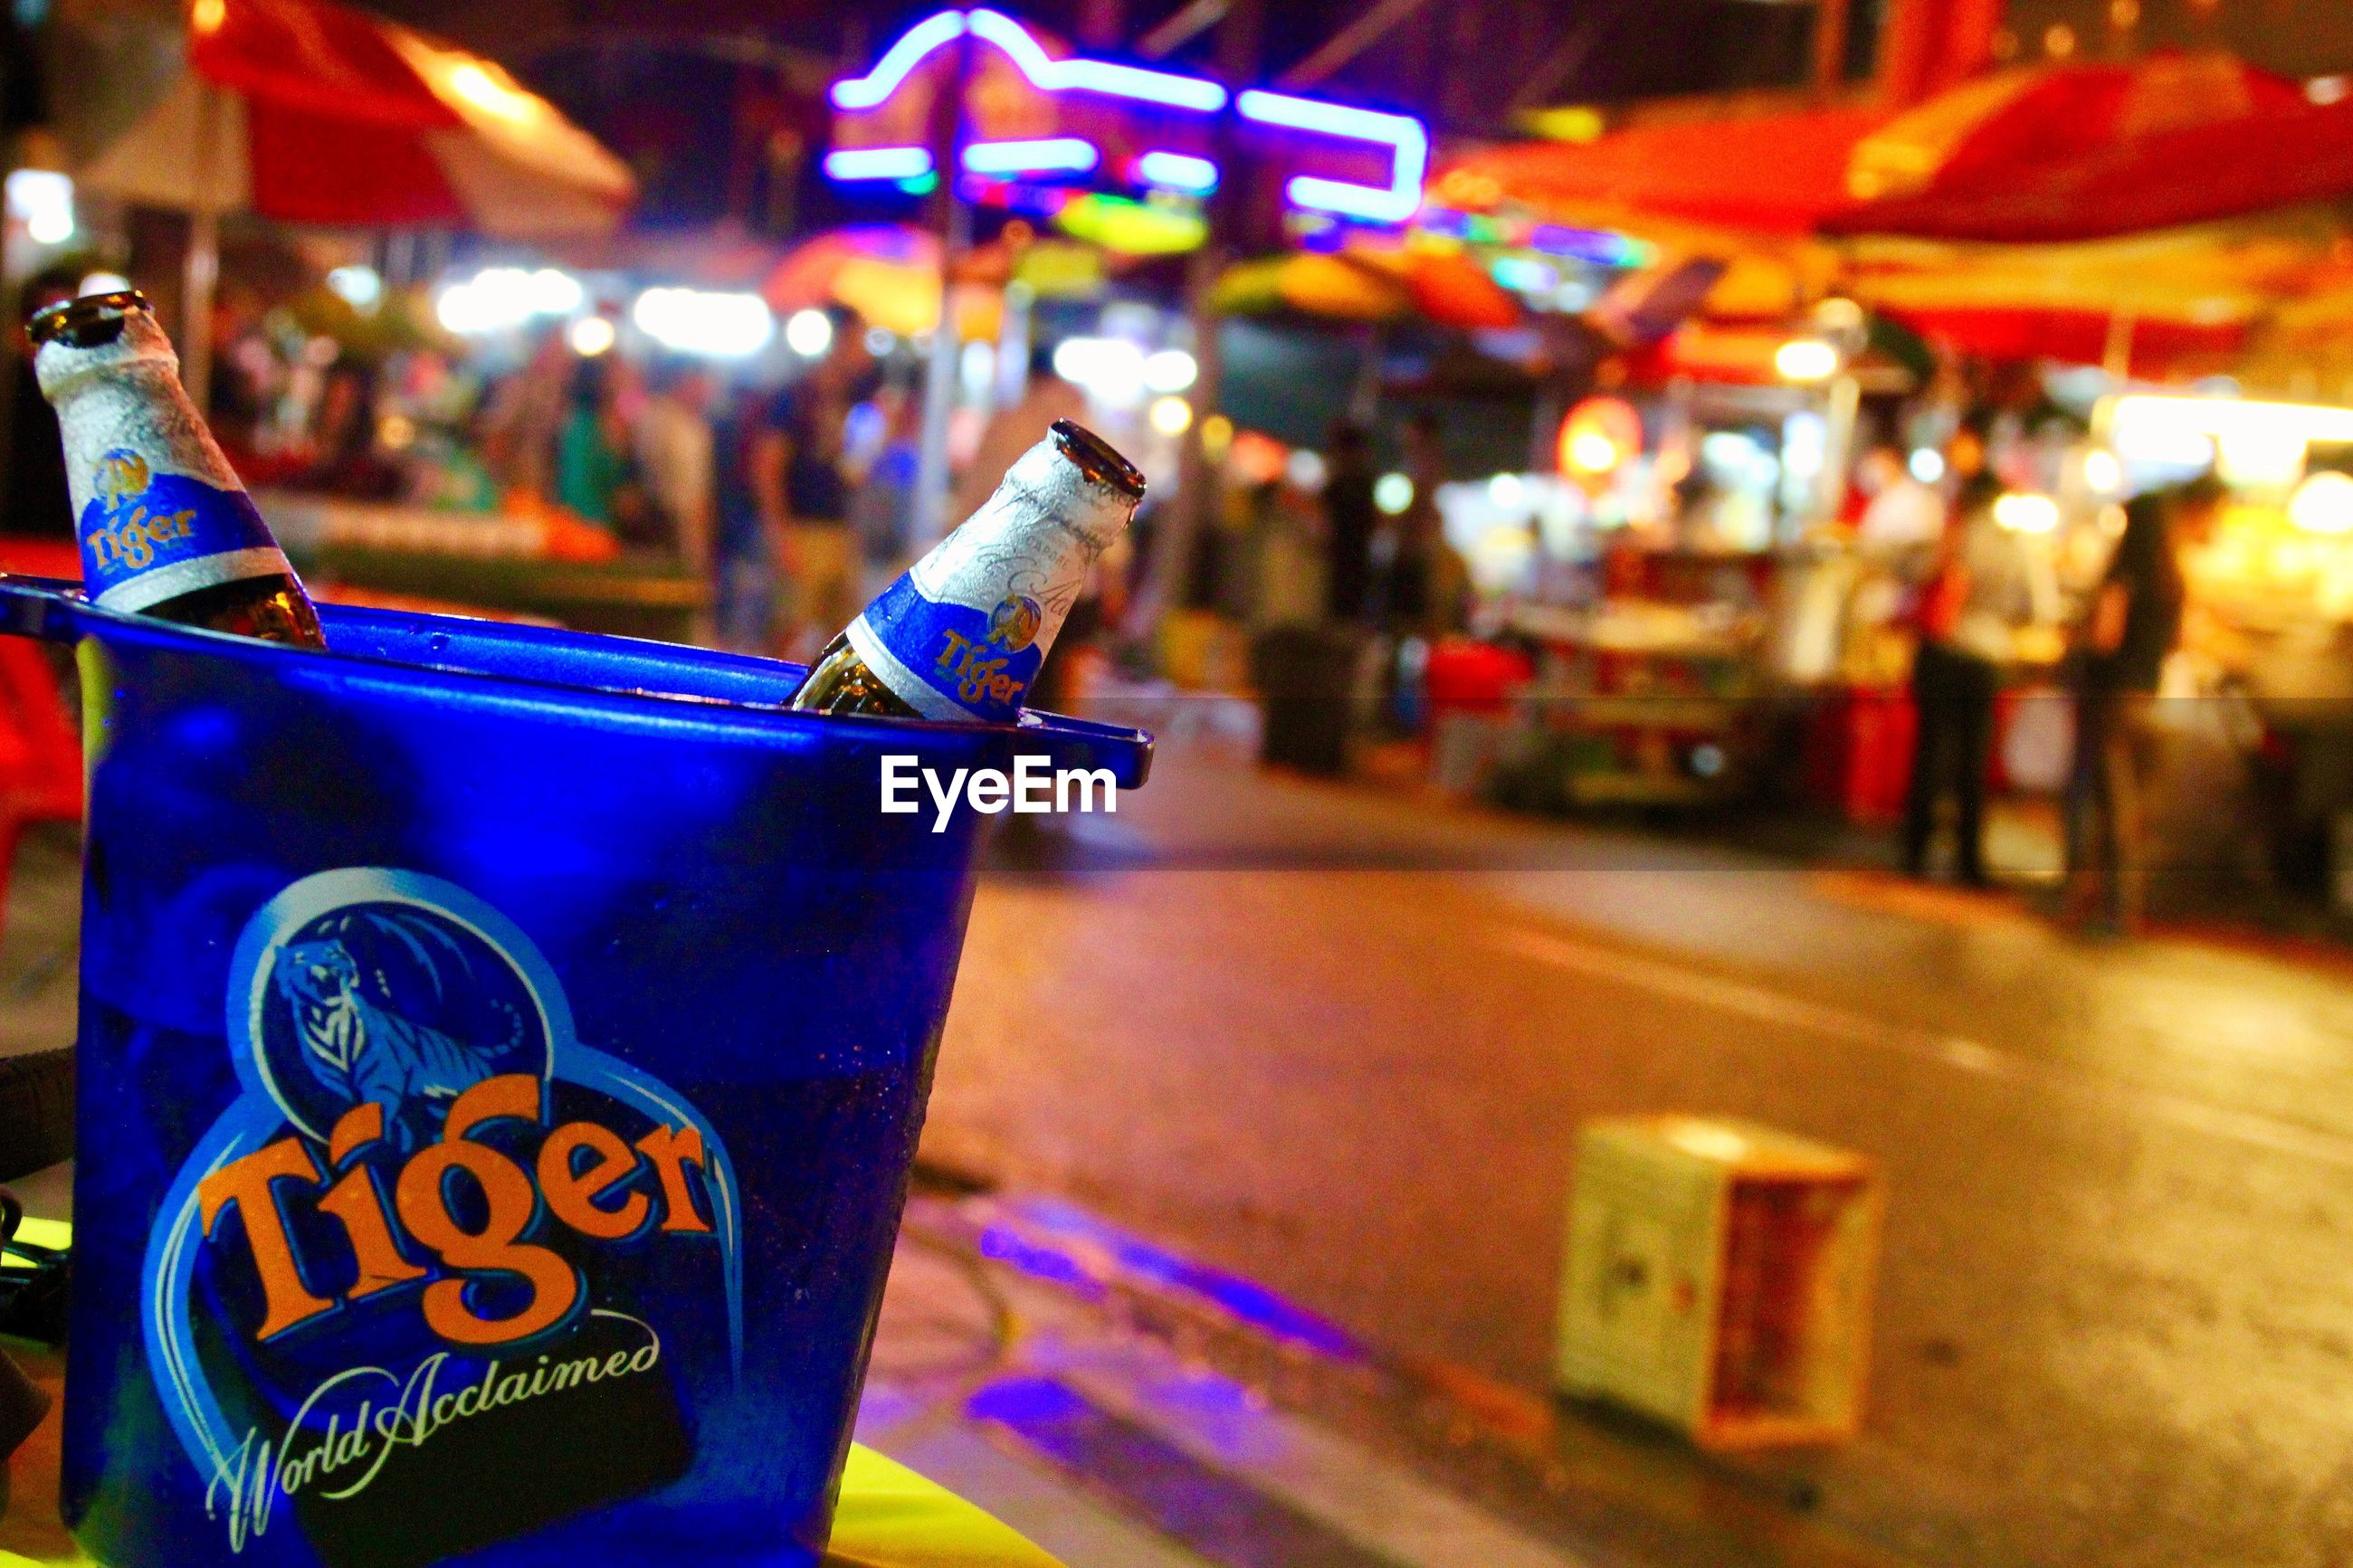 CLOSE-UP OF DRINK IN CITY AT NIGHT